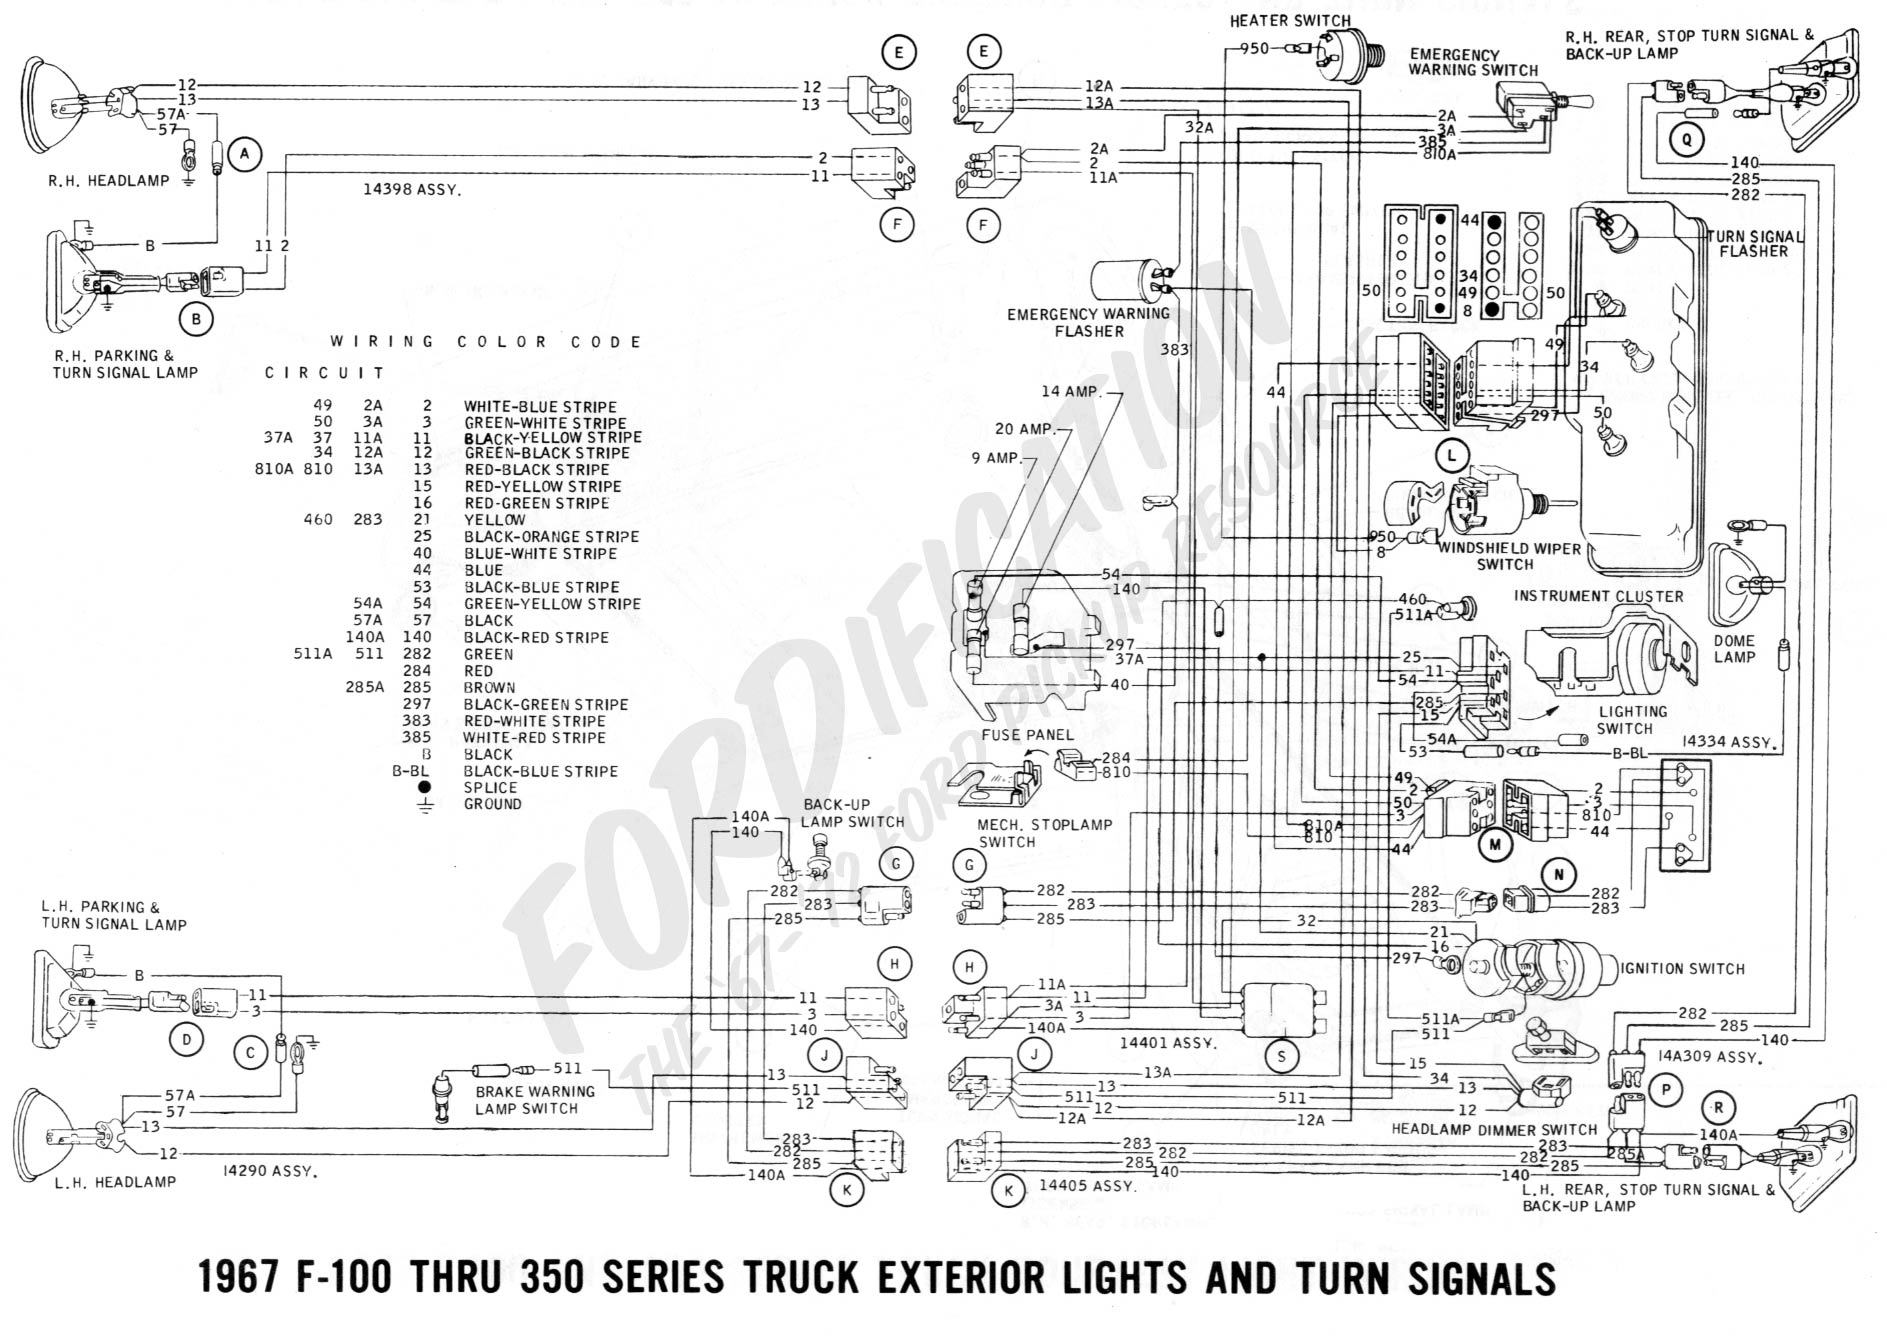 80 1967_exterior_lights_and_turn_signals_page_2_1db6c529c4c9567560e56d6320f993290ba5b803 wiring diagram for 1986 ford f250 the wiring diagram f750 wiring diagram at panicattacktreatment.co